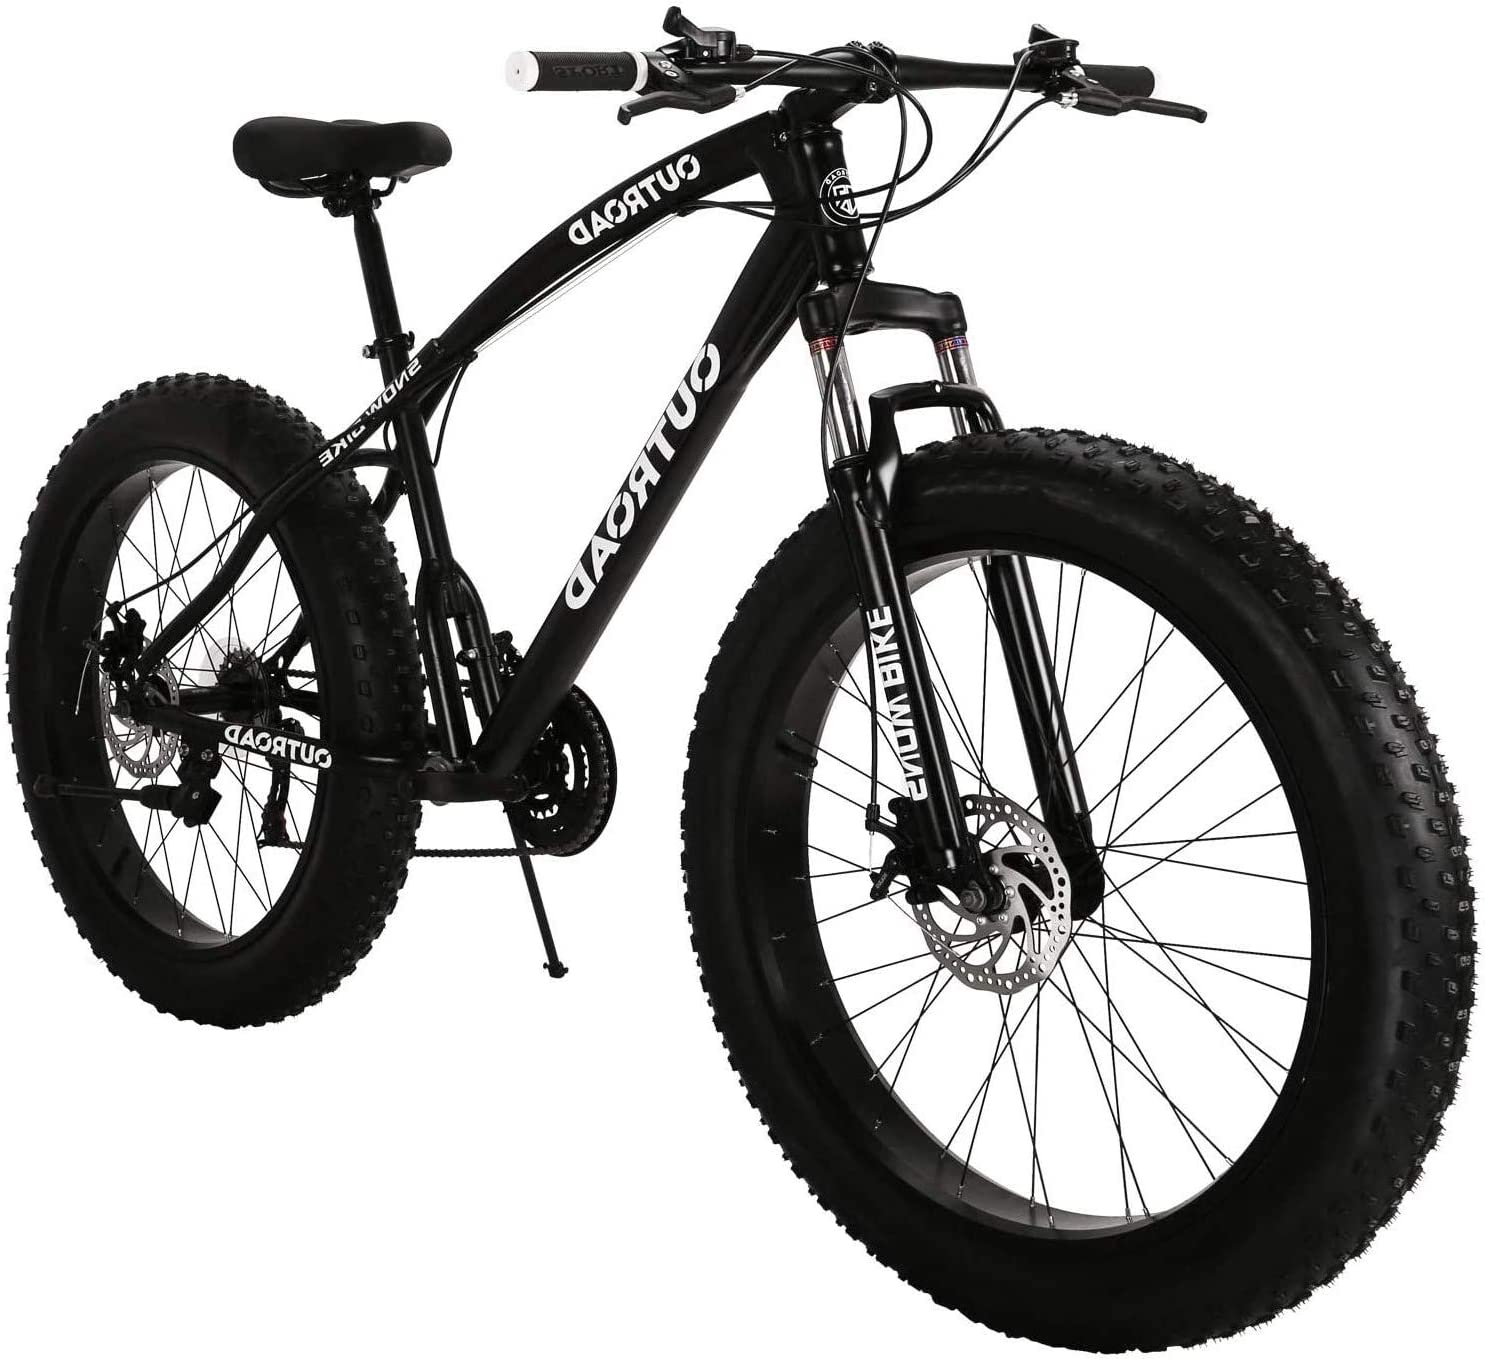 PanAme 26 inch Fat Tire Mountain Bike, High-Carbon Steel Frame, 21-Speed, Disc Brake and Shock Absorber Fork